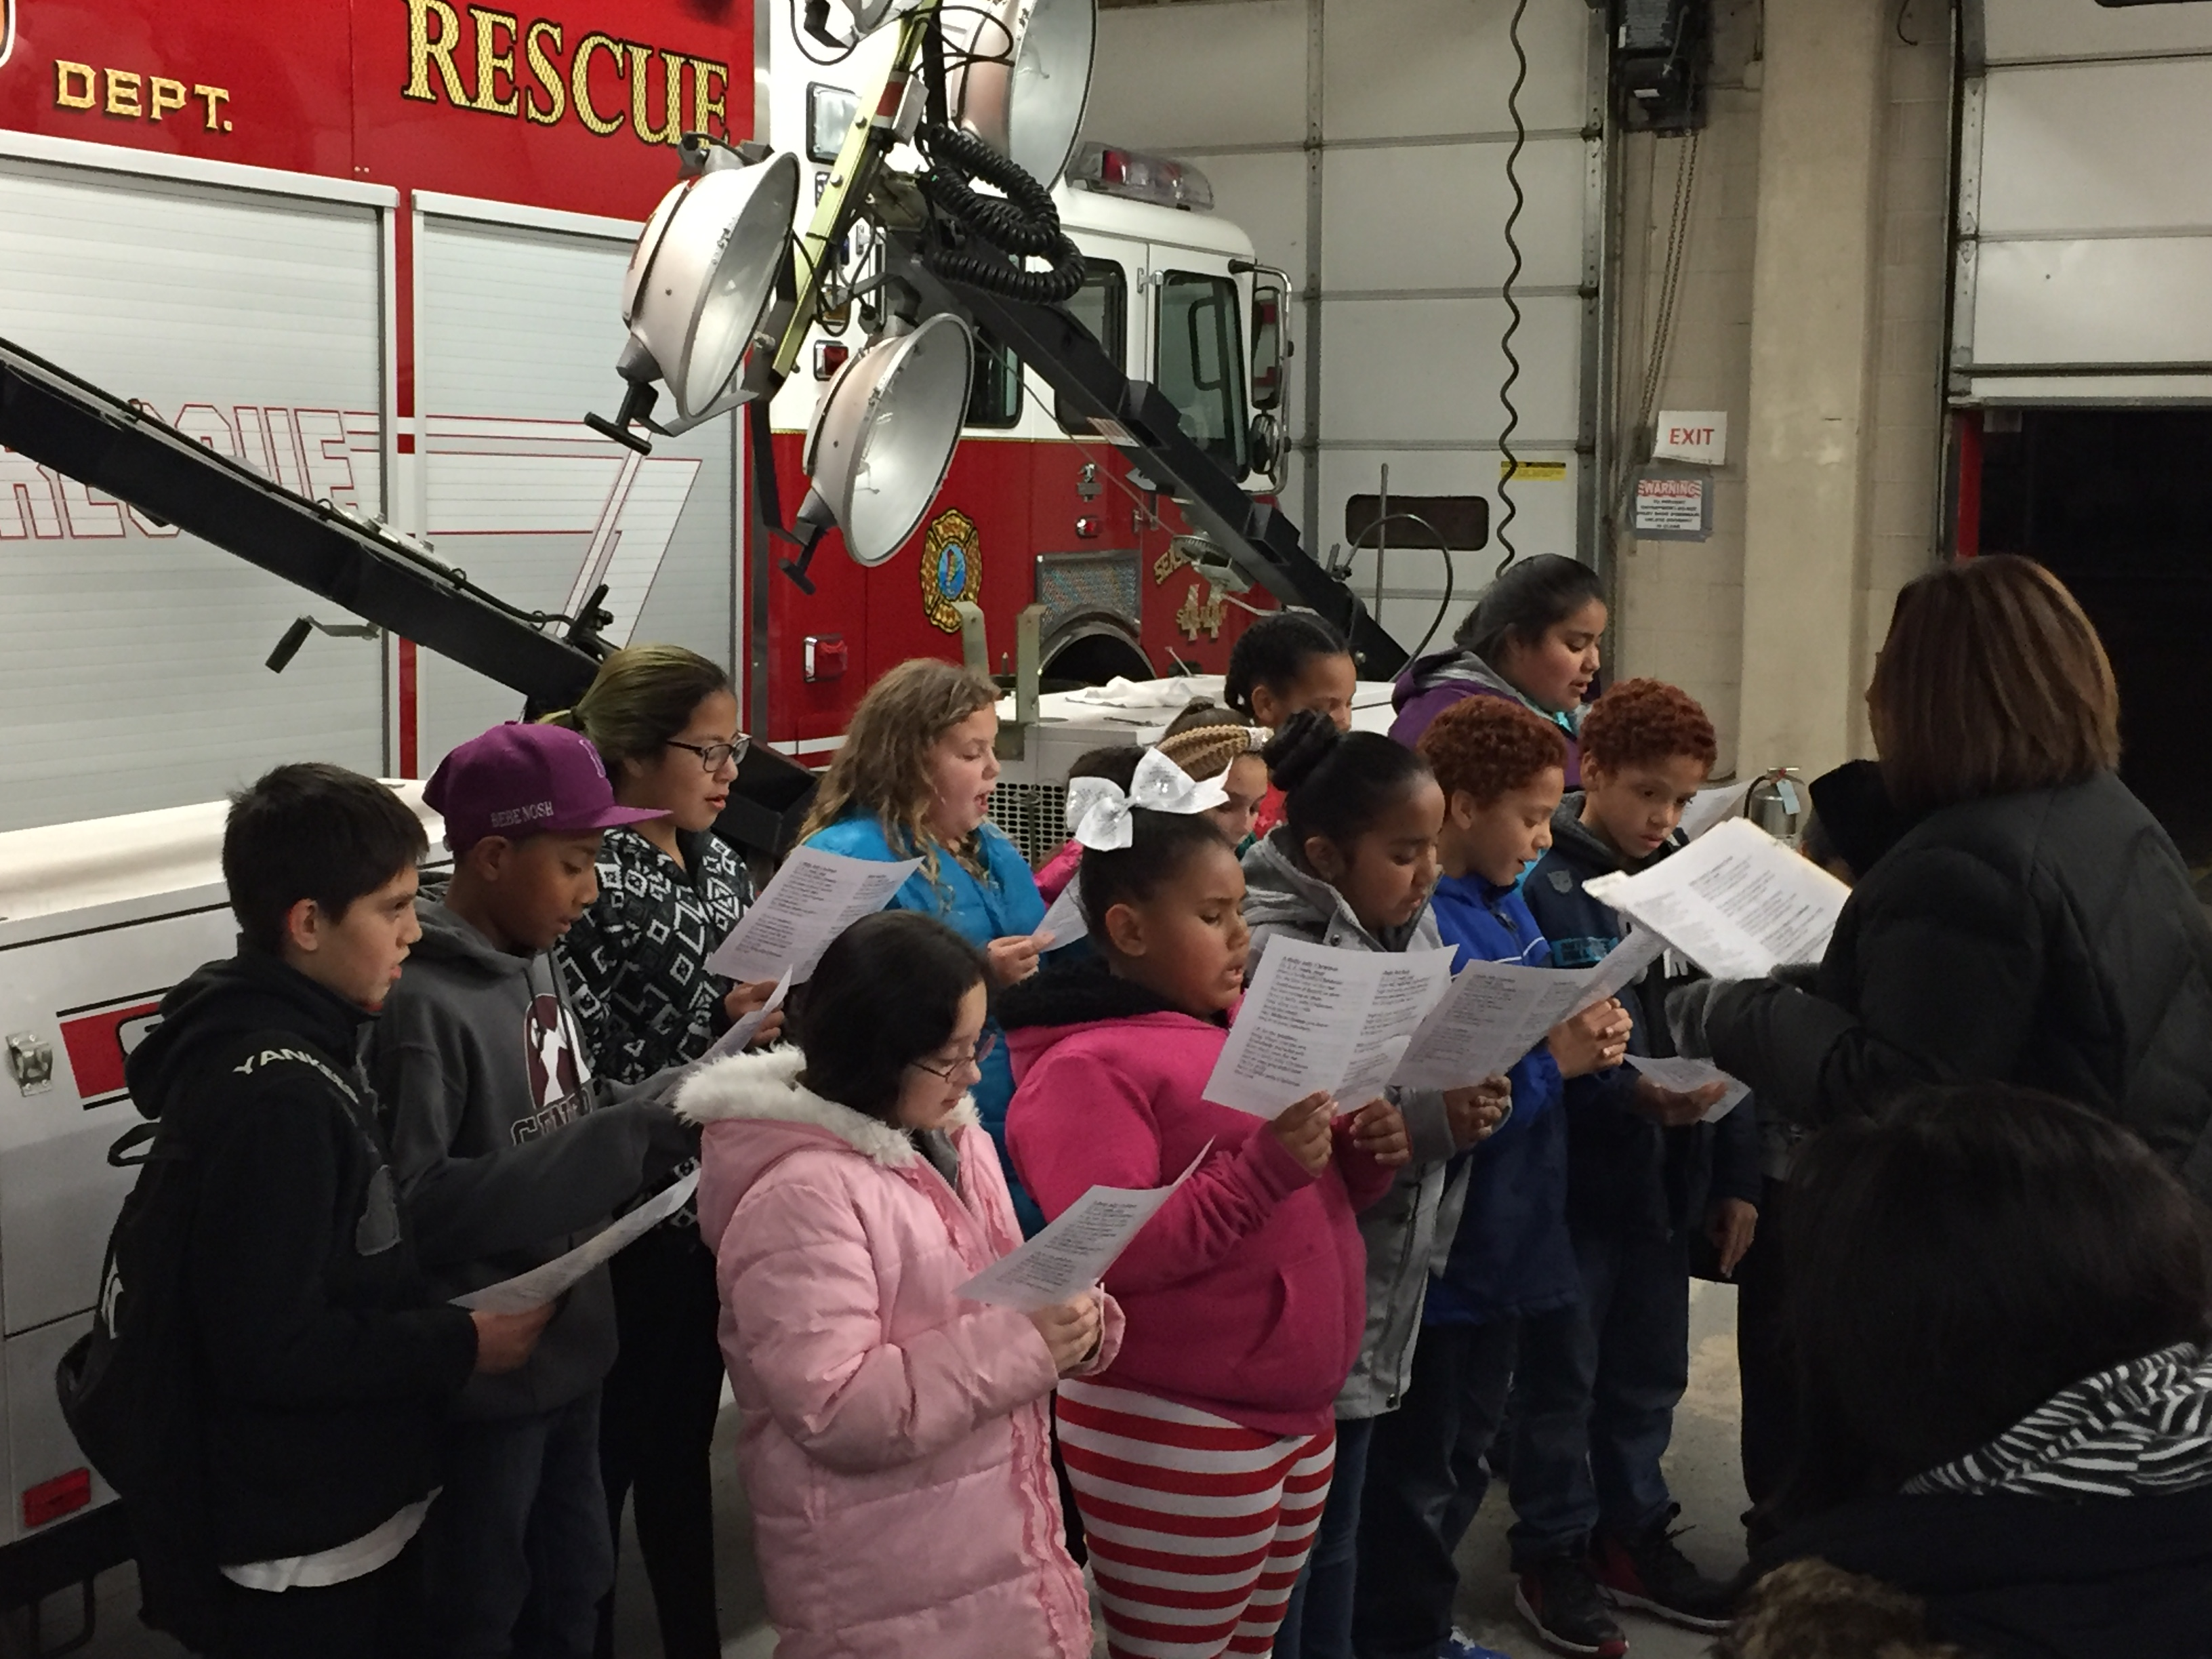 Children from Seaside Heights perform Christmas carols at the borough's annual tree lighting, Dec. 4, 2015. (Photo: Daniel Nee)